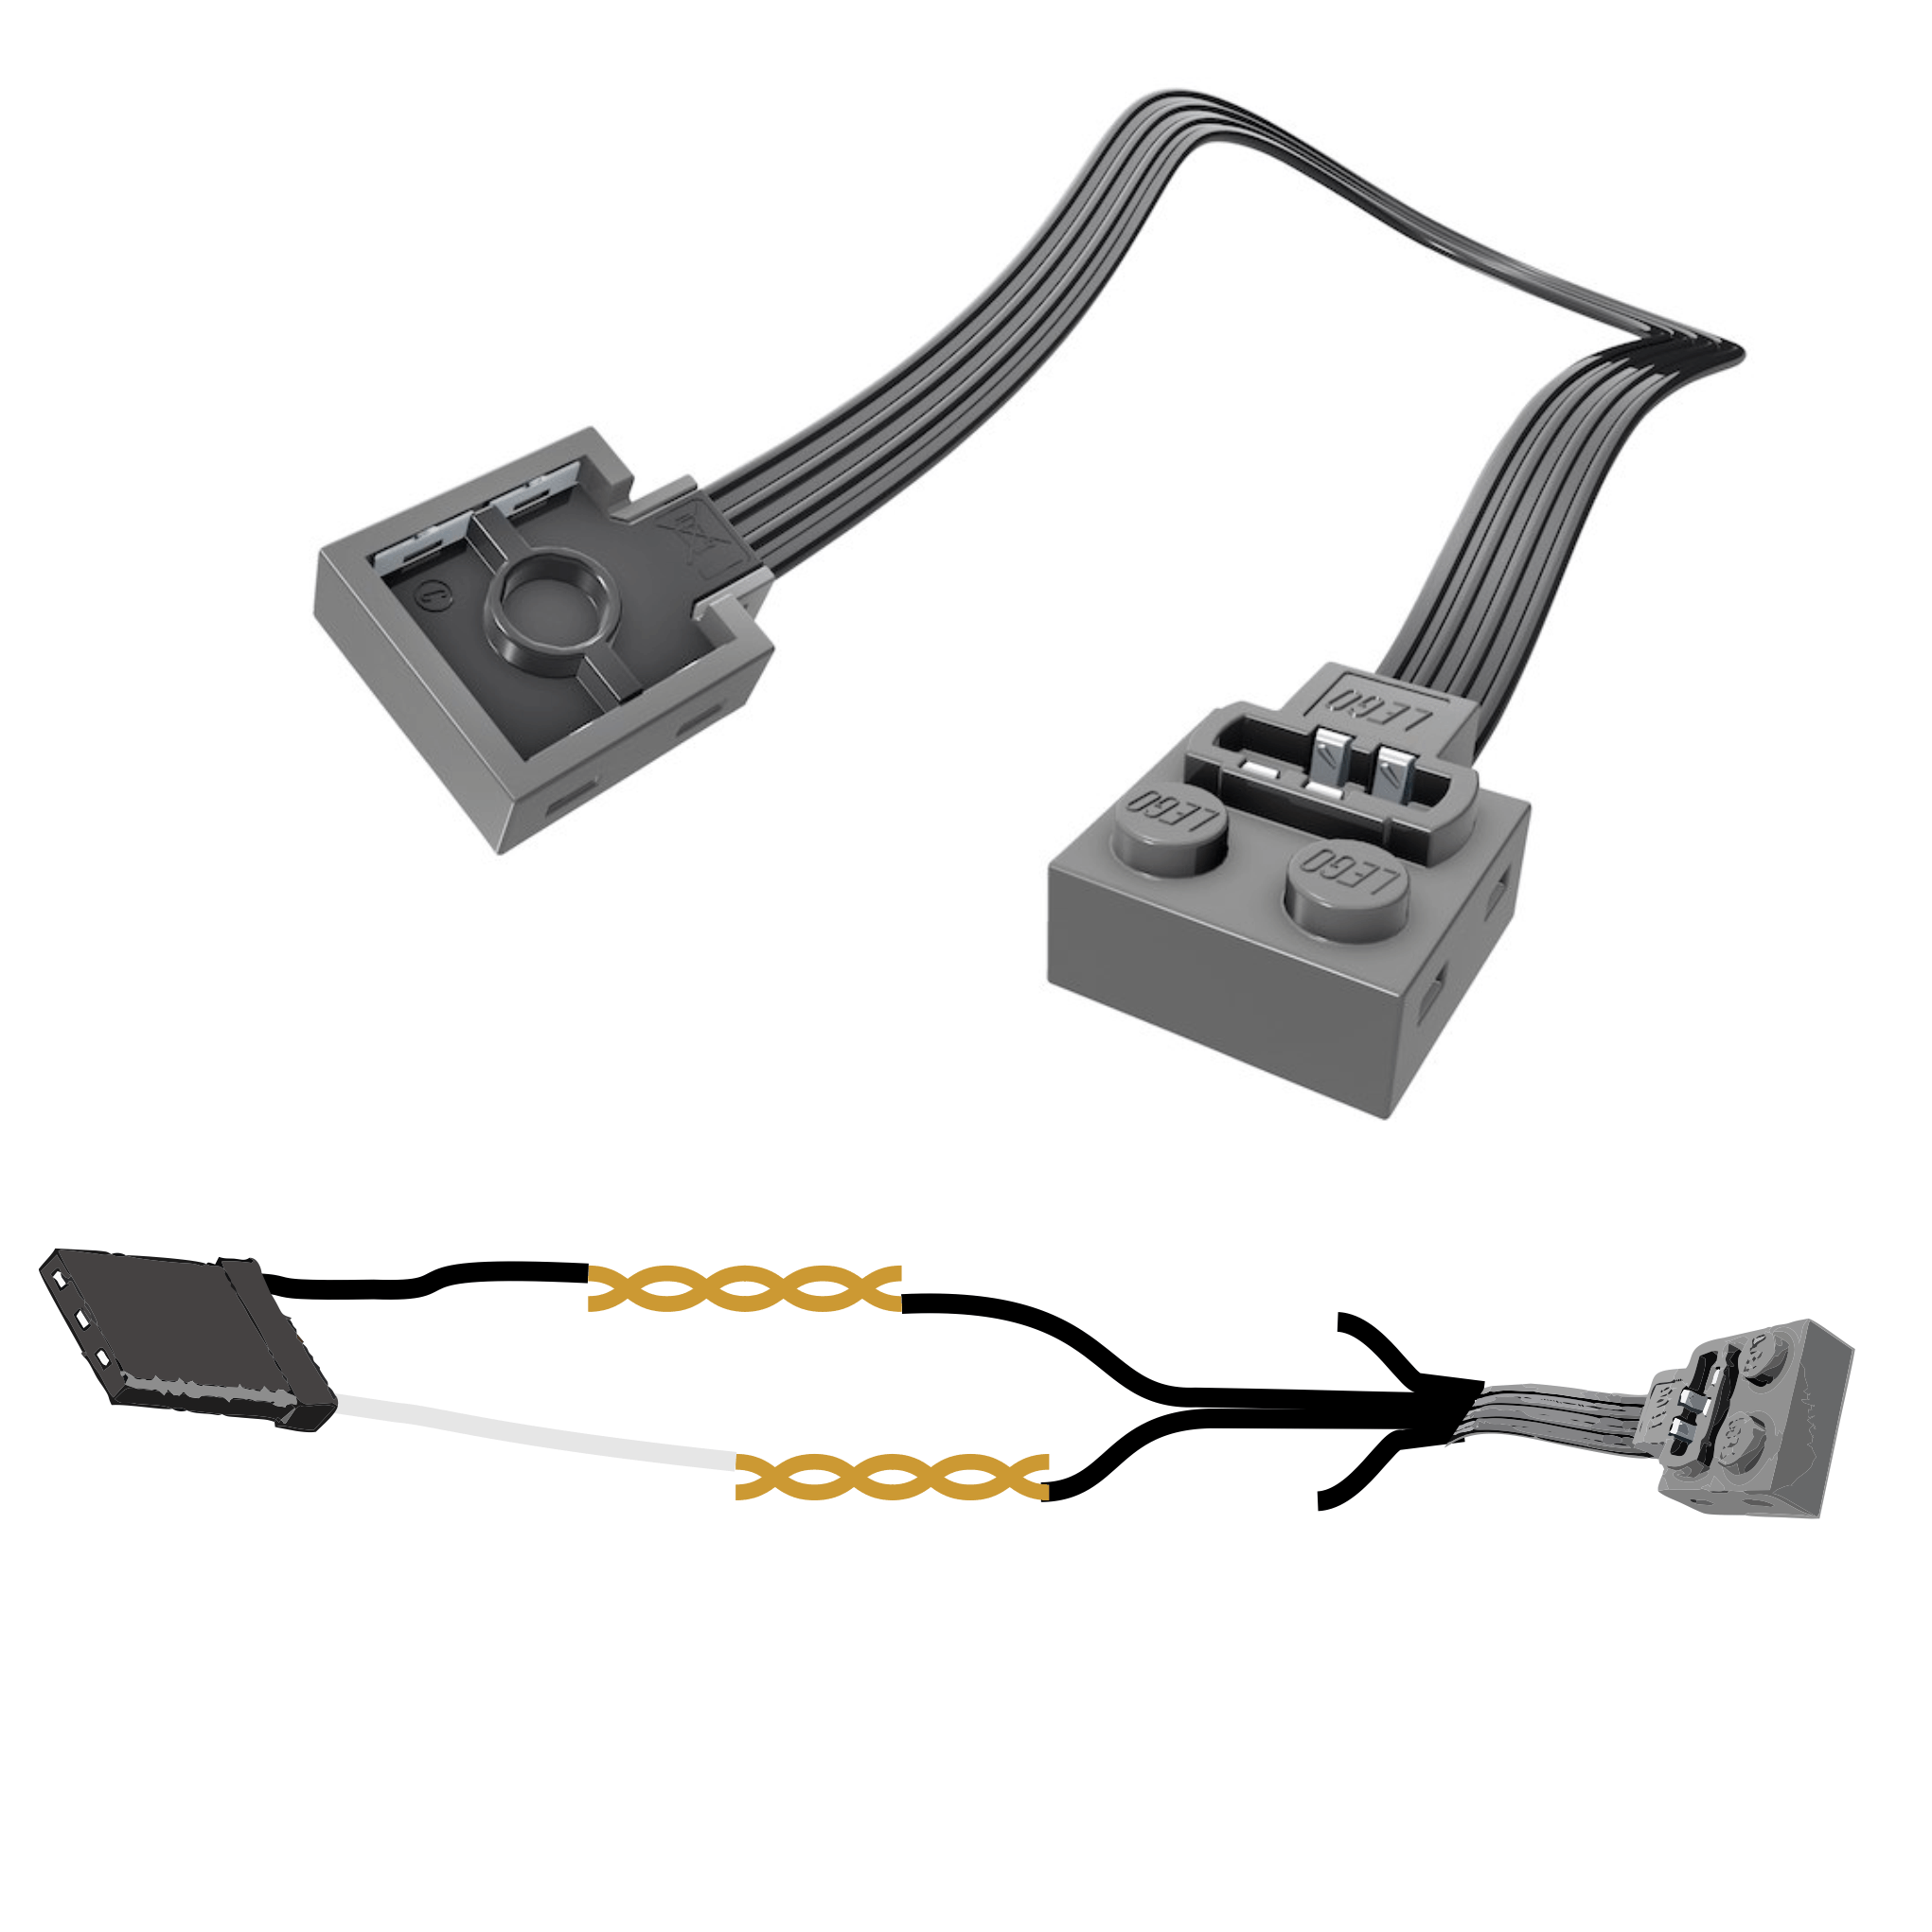 legopowerfunctionscable.png